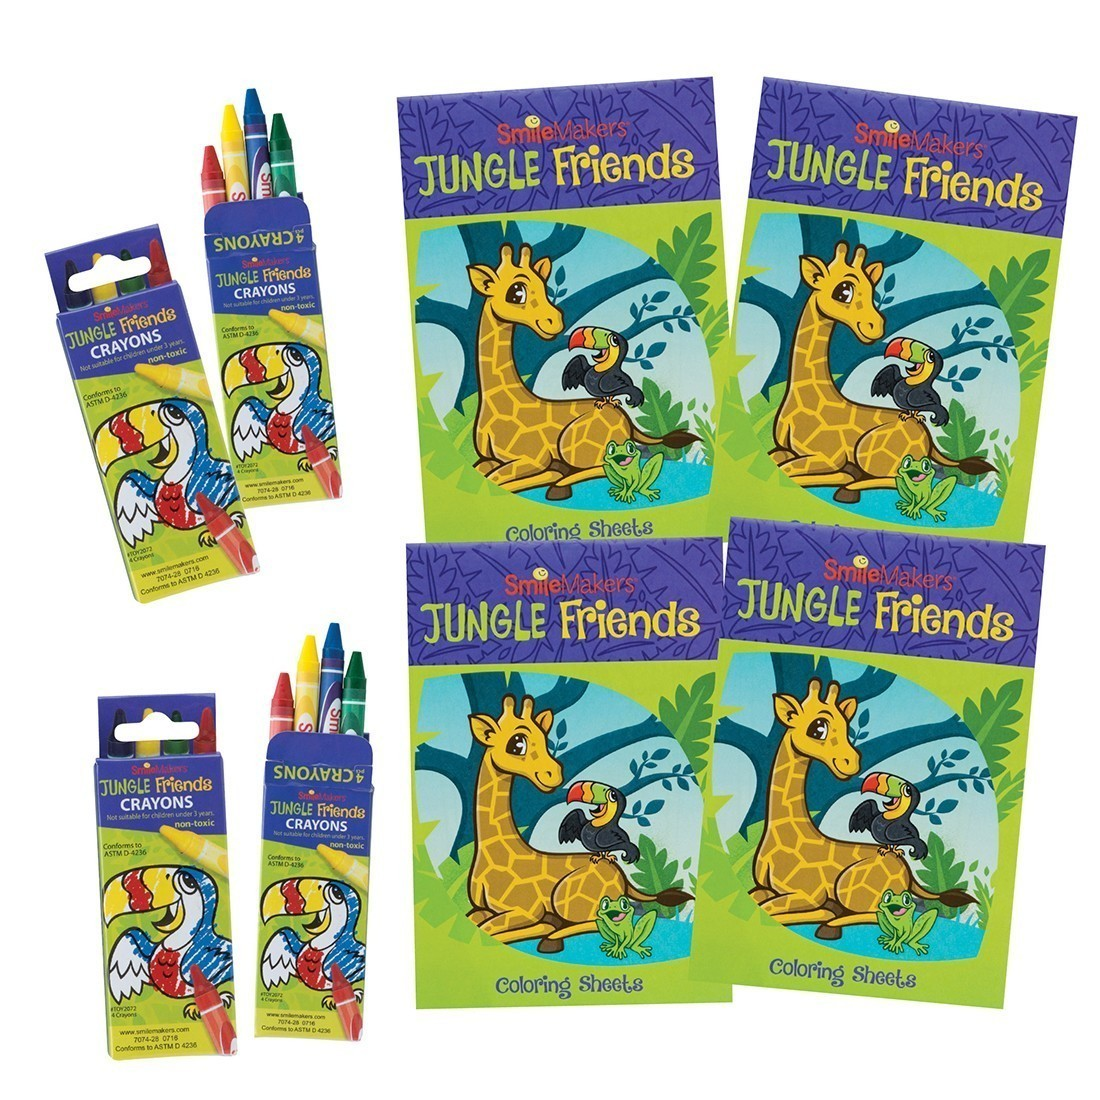 SmileMakers Jungle Friends Coloring Value Pack [image]